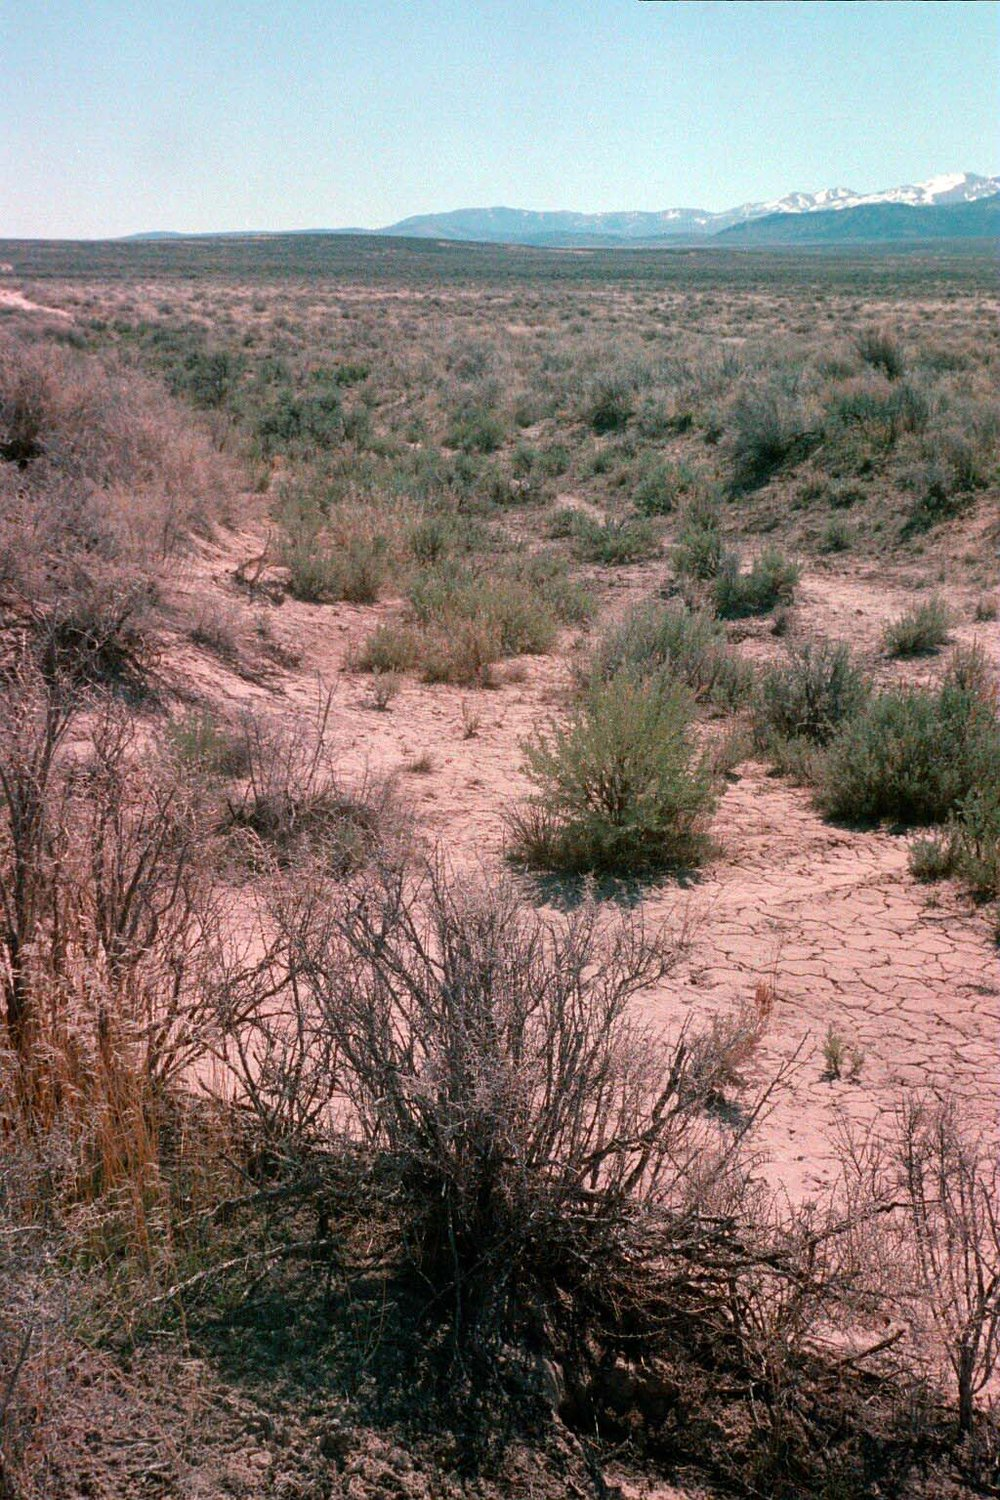 141a_Hensley ruts NW of Naf na.jpg